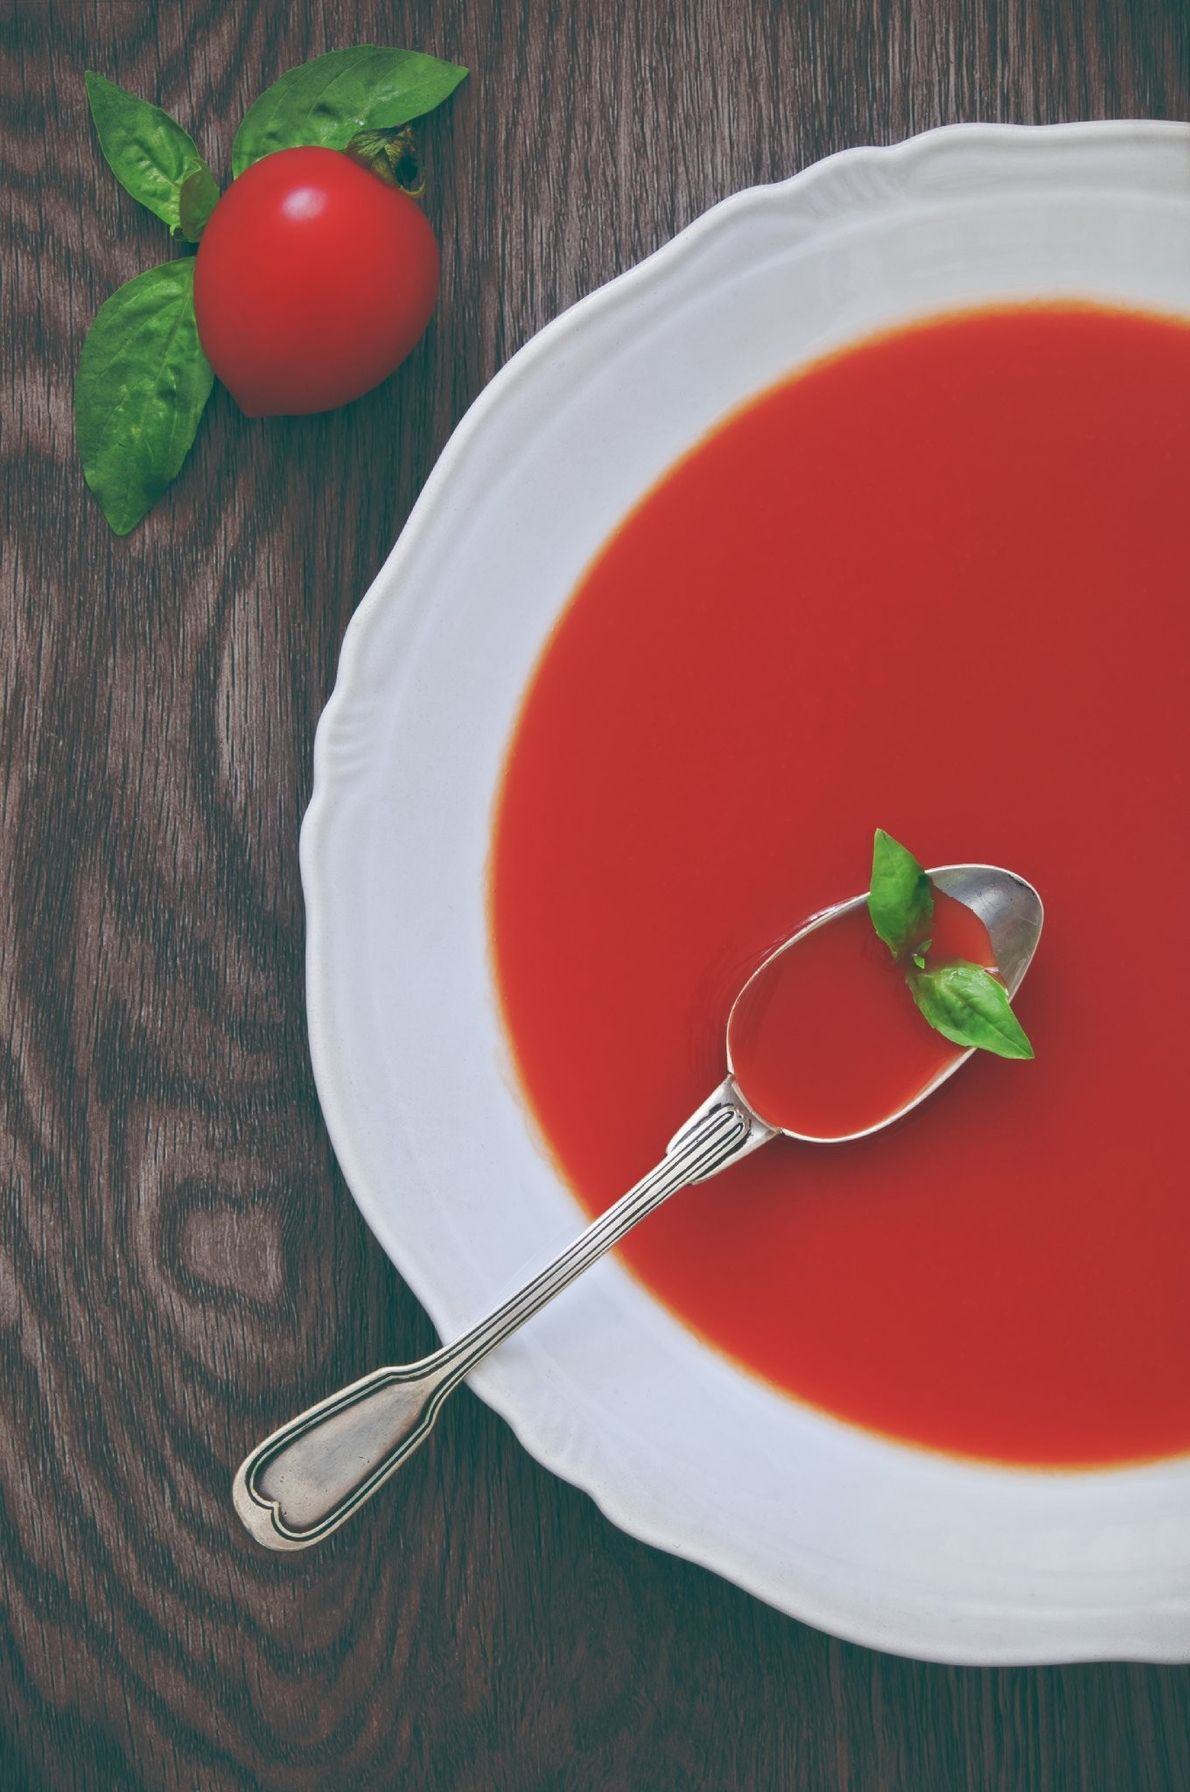 Your Shot photographer Yuliy Vasilev made this still life image of tomato soup.